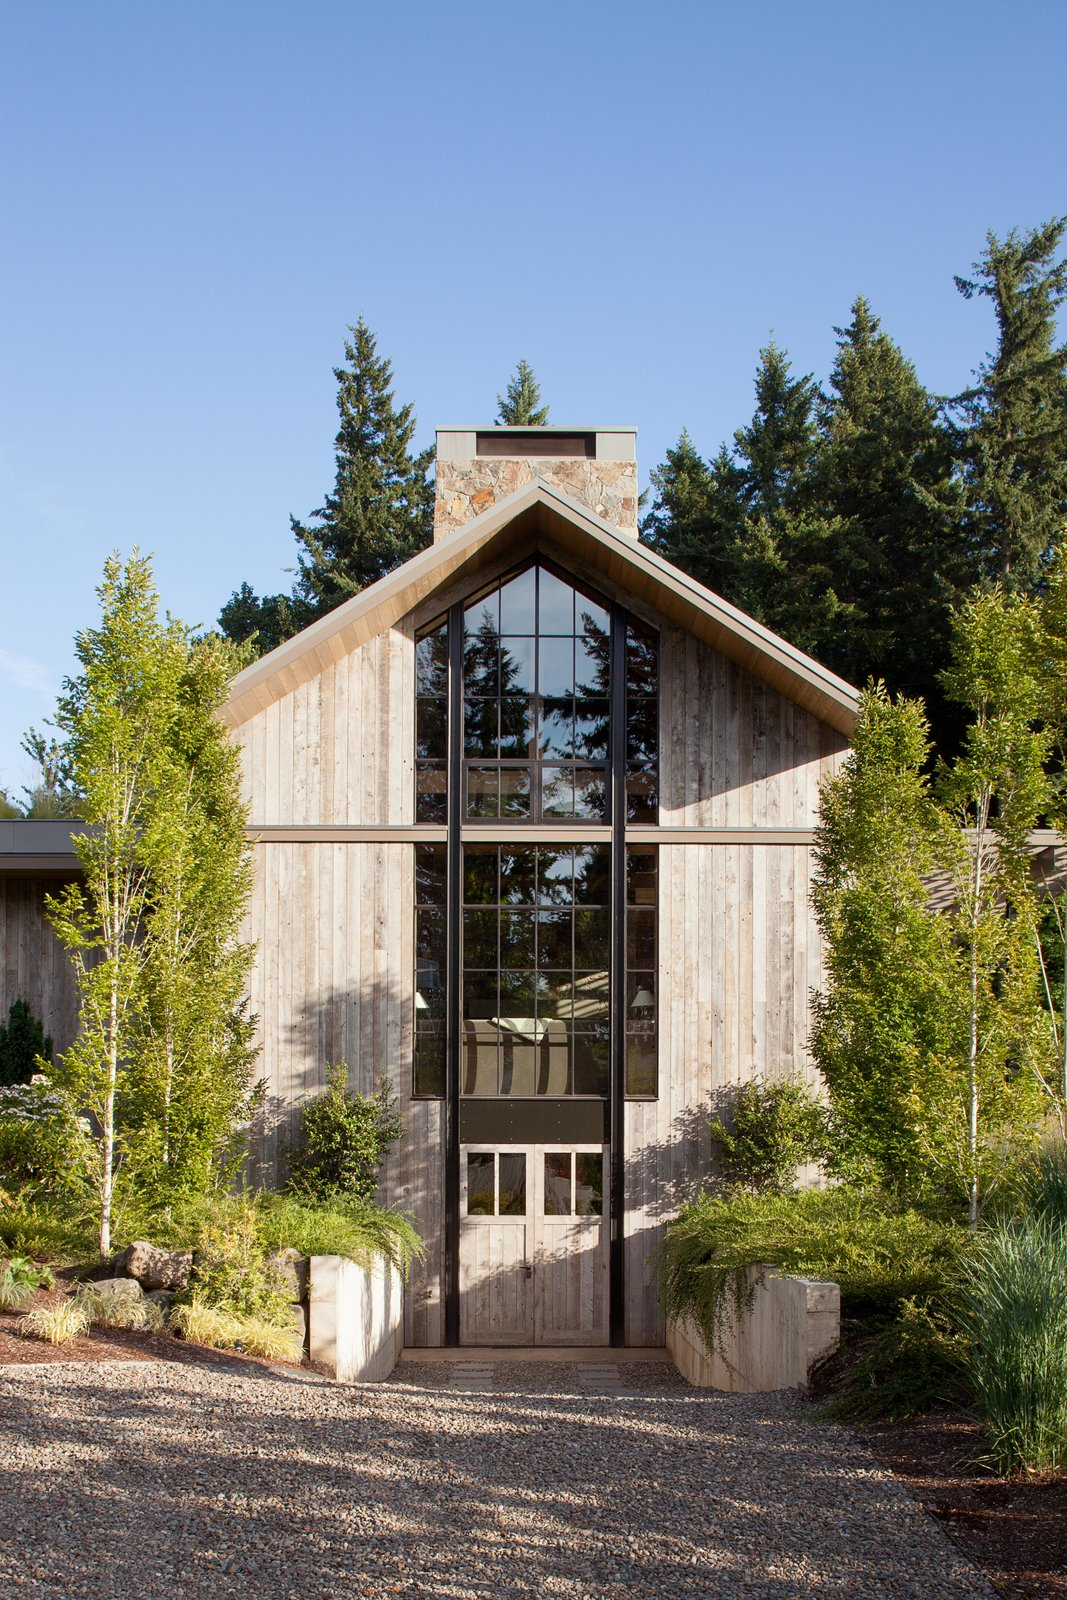 Exterior, Wood Siding Material, and House Building Type Country Garden House | Olson Kundig  Country Garden House by Olson Kundig